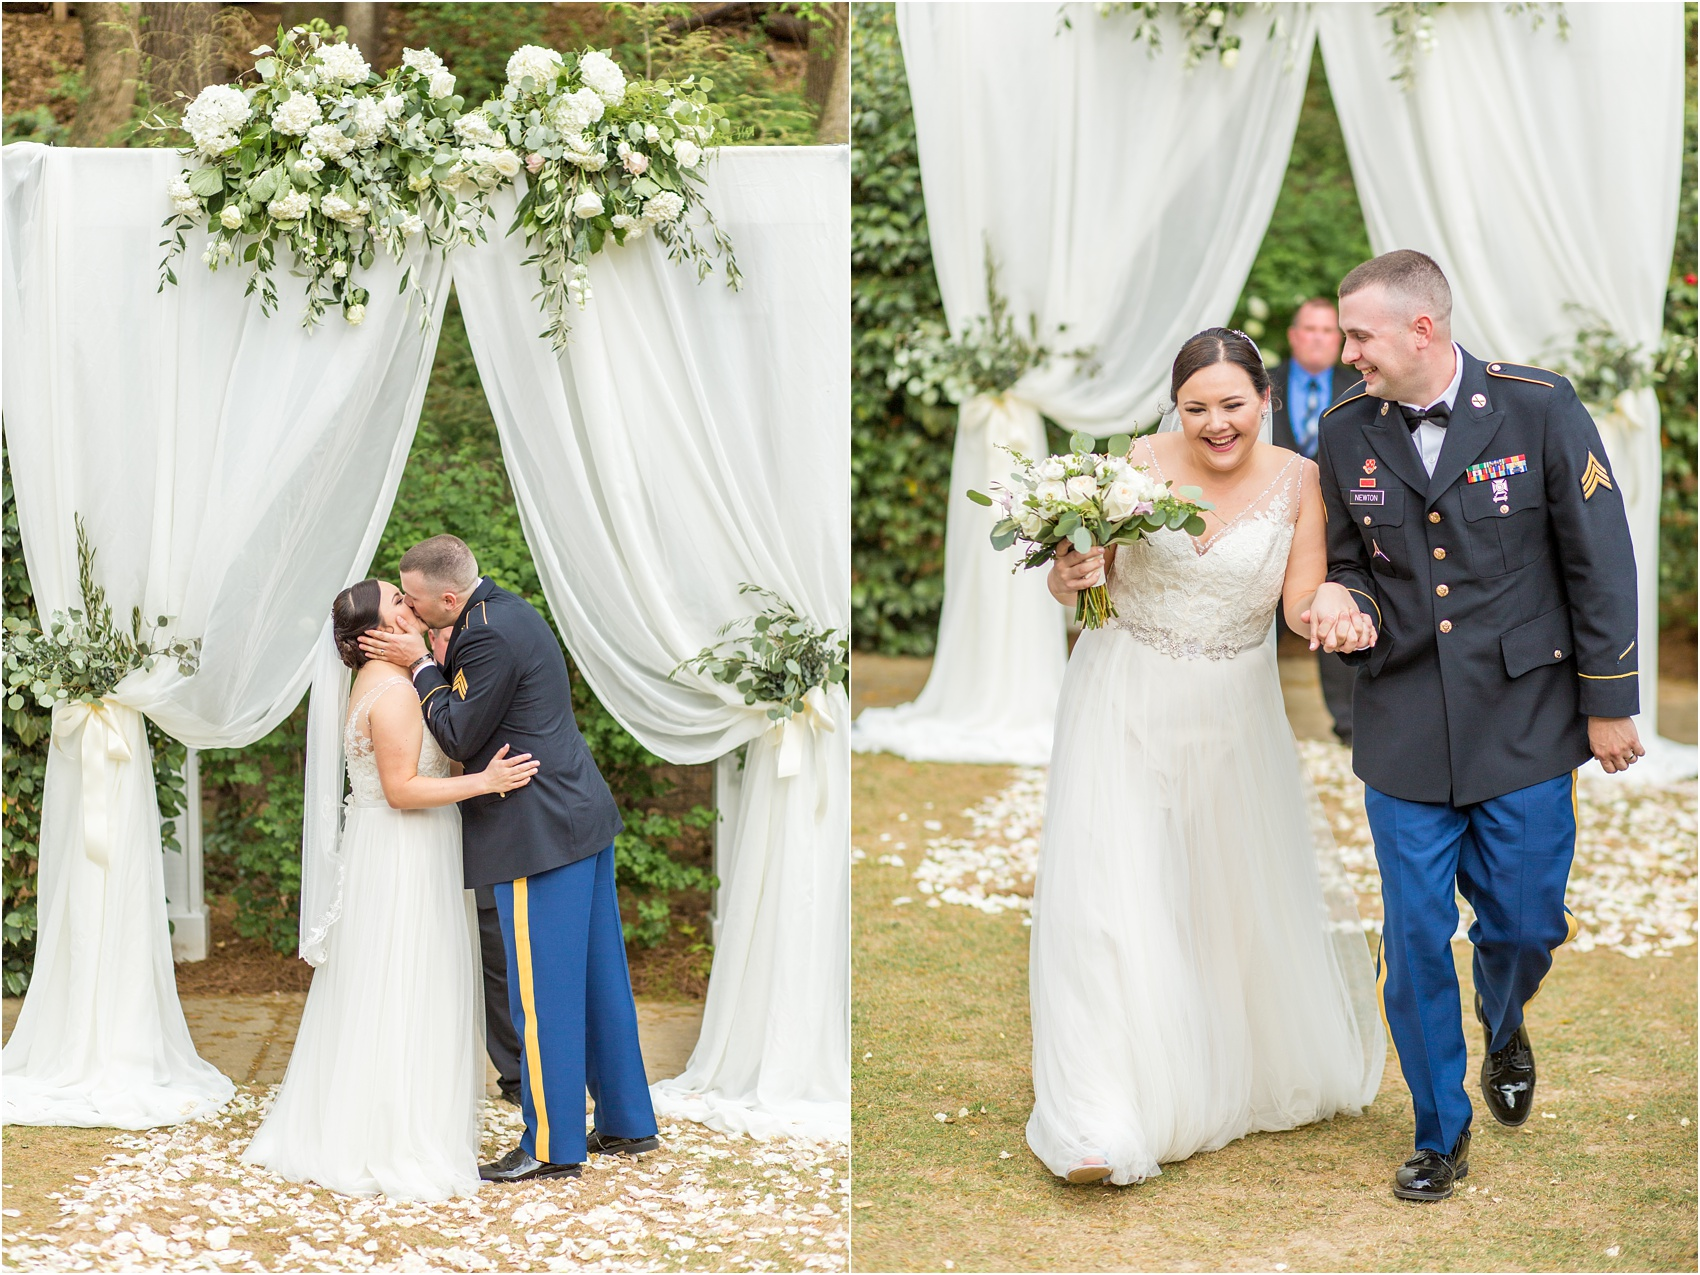 Savannah Eve Photography- Newton Wedding- Blog-100.jpg